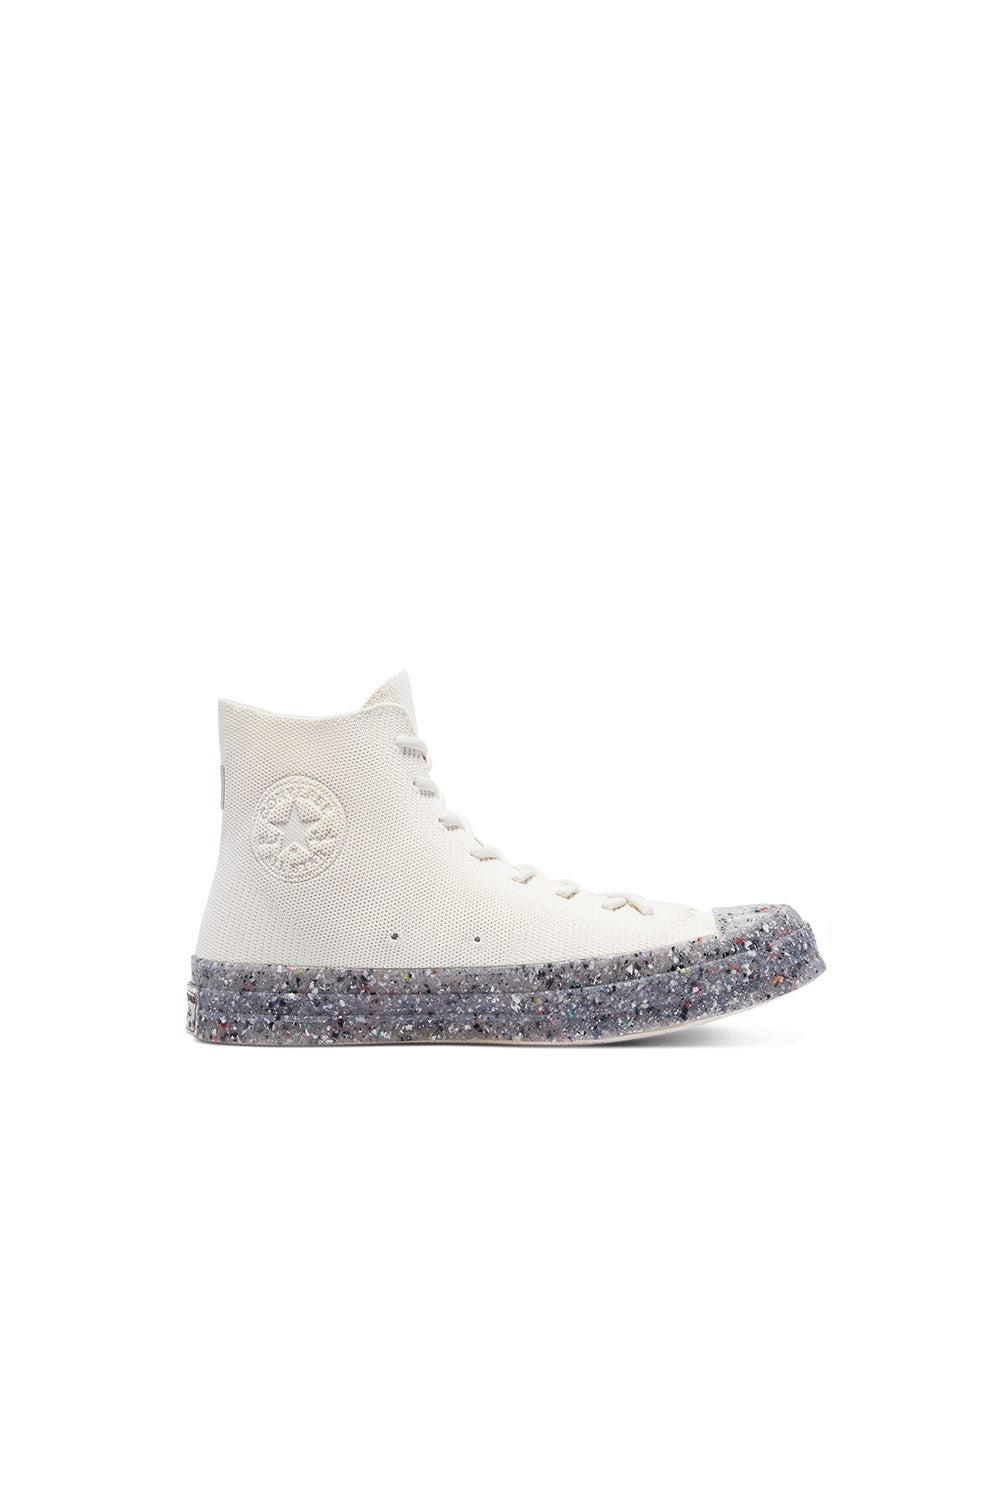 Converse Chuck Taylor 70 Recycled Knit Egret